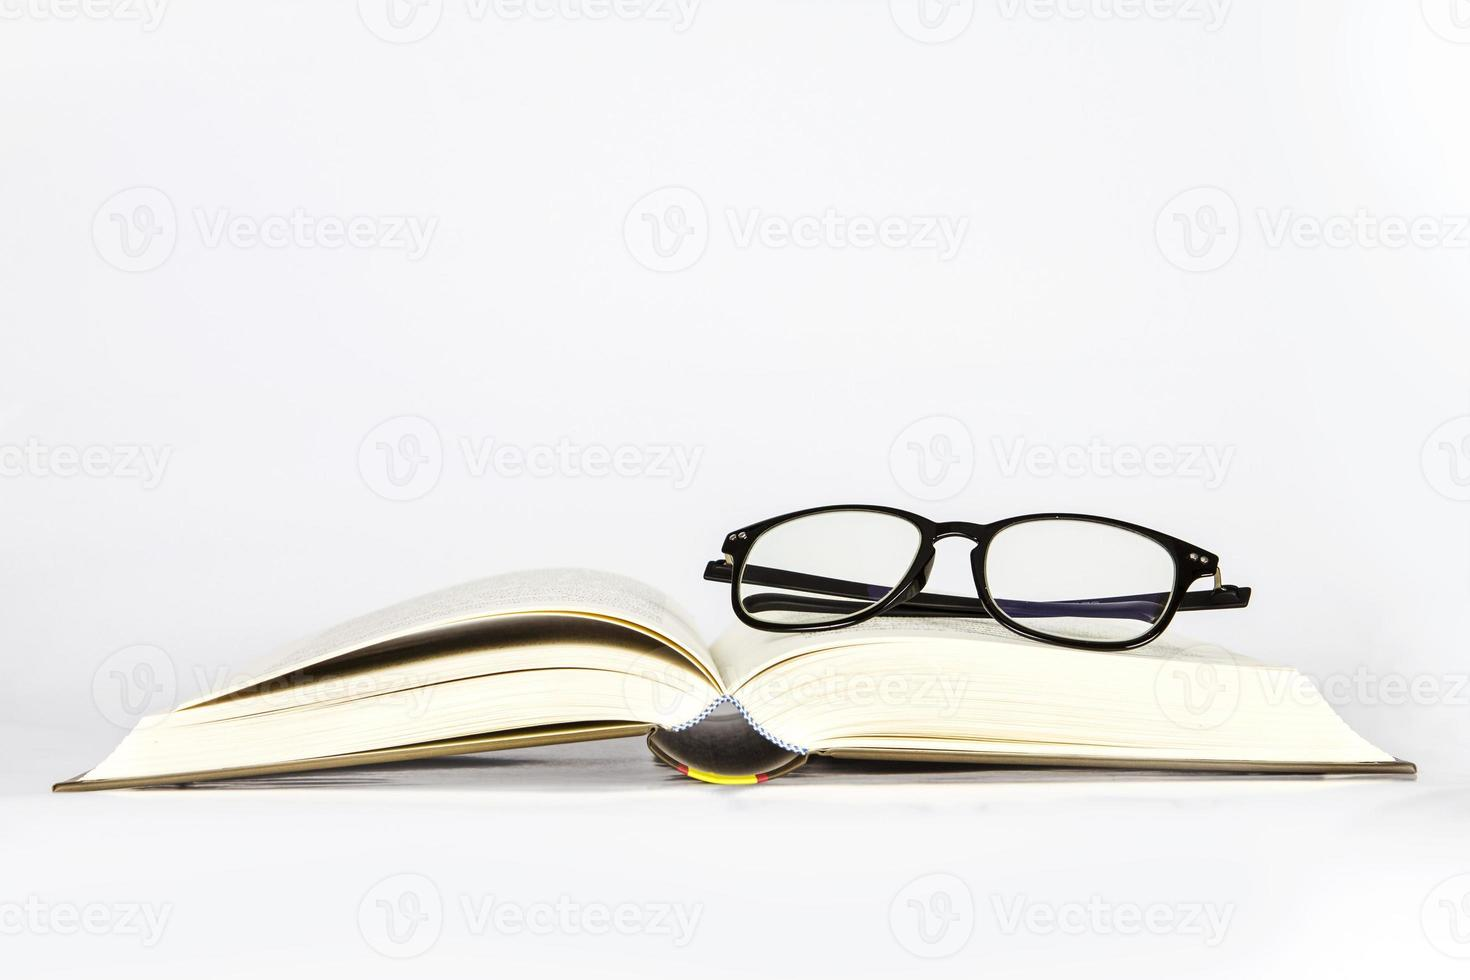 black rimmed glasses placed on opened book photo